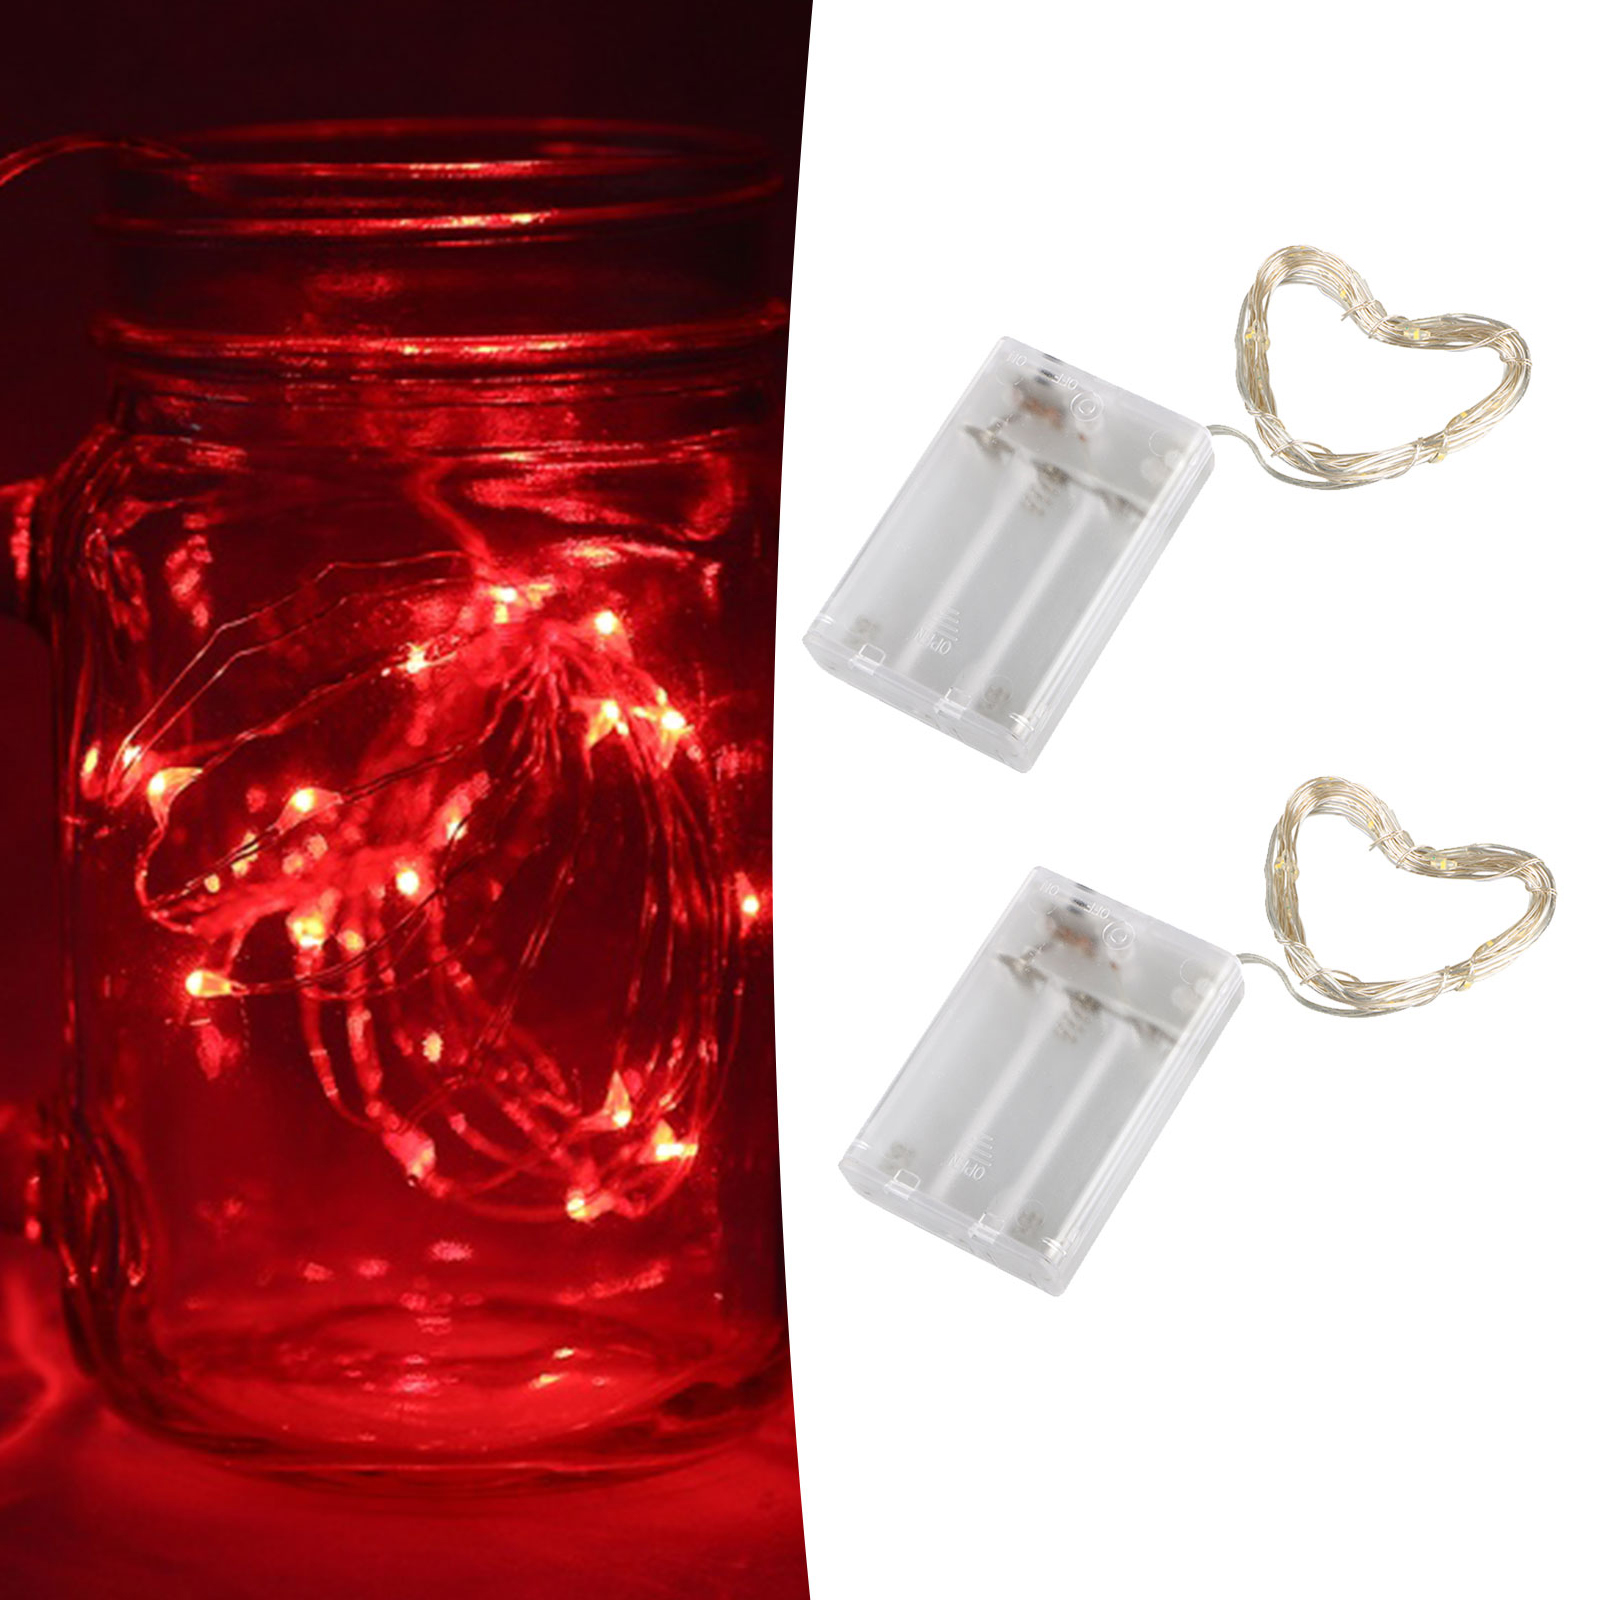 10Ft/3M 30 LEDs Waterproof Wire Starry Fairy String Light Warm White/White/Red for Christmas Party Home Decoration